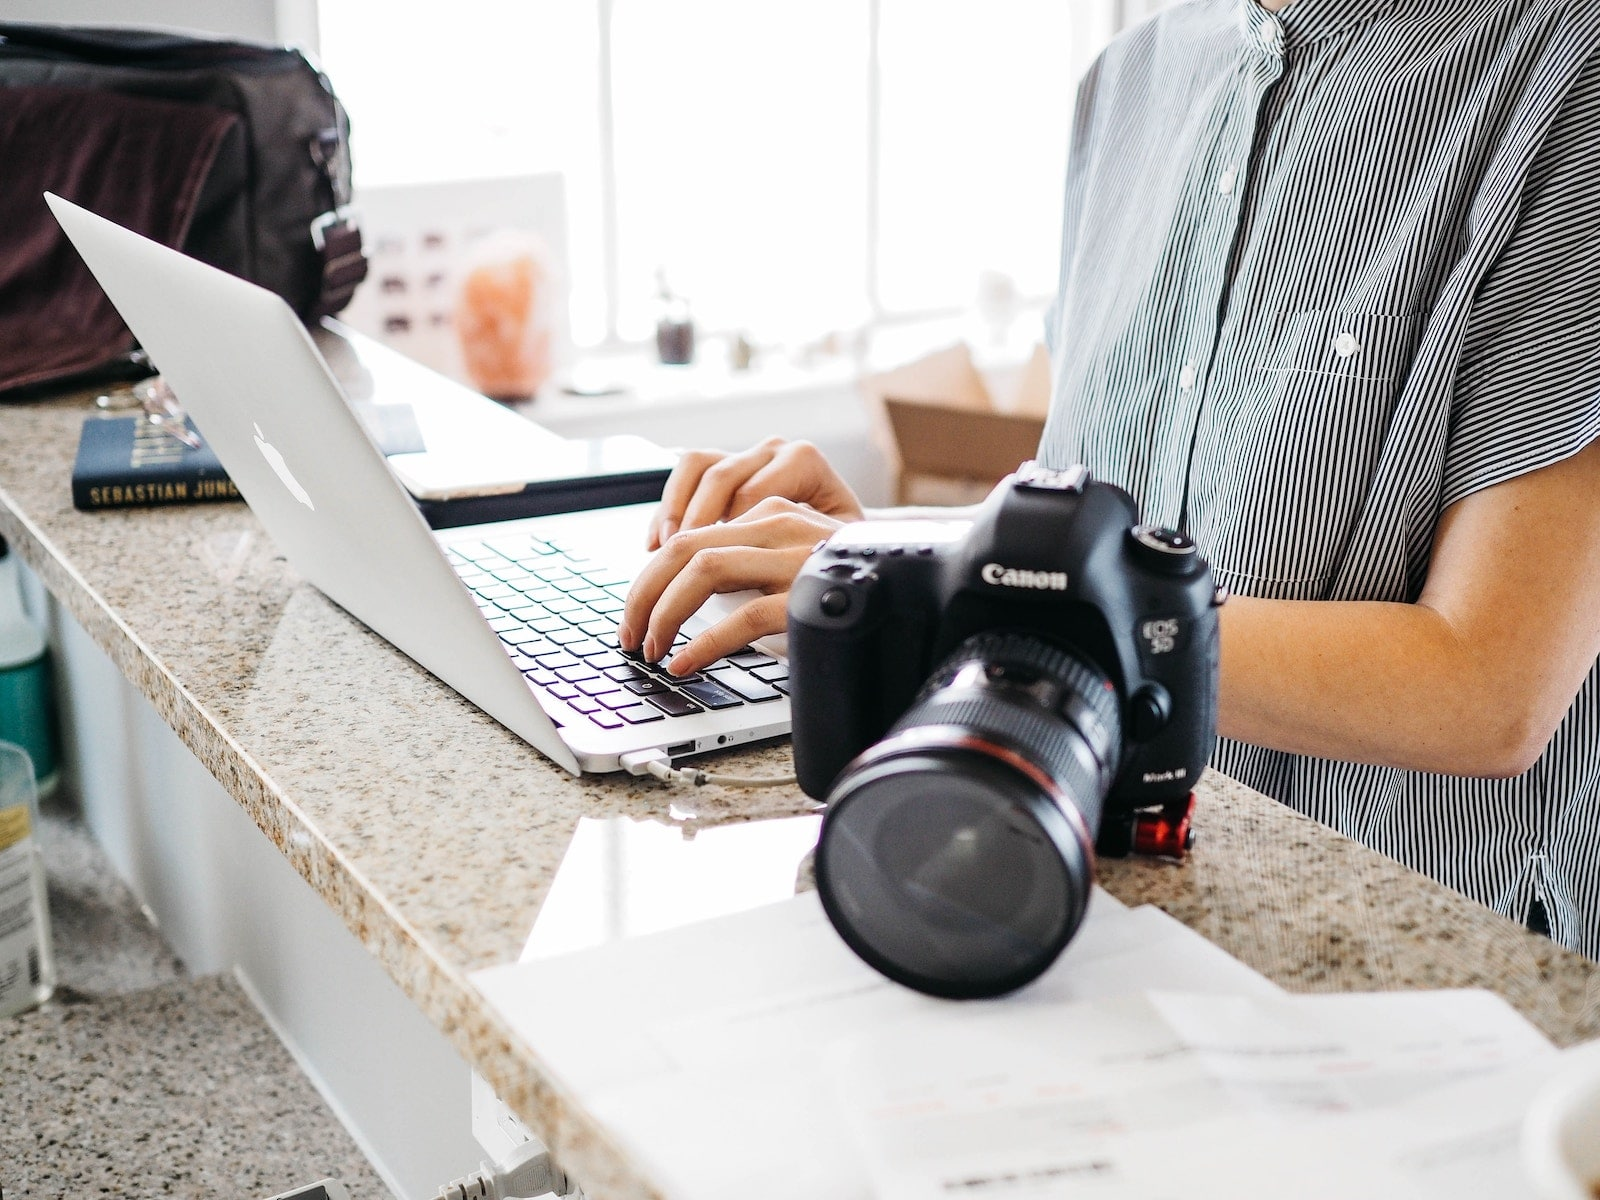 5 Common Website Mistakes Photographers Make (And How to Avoid Them)